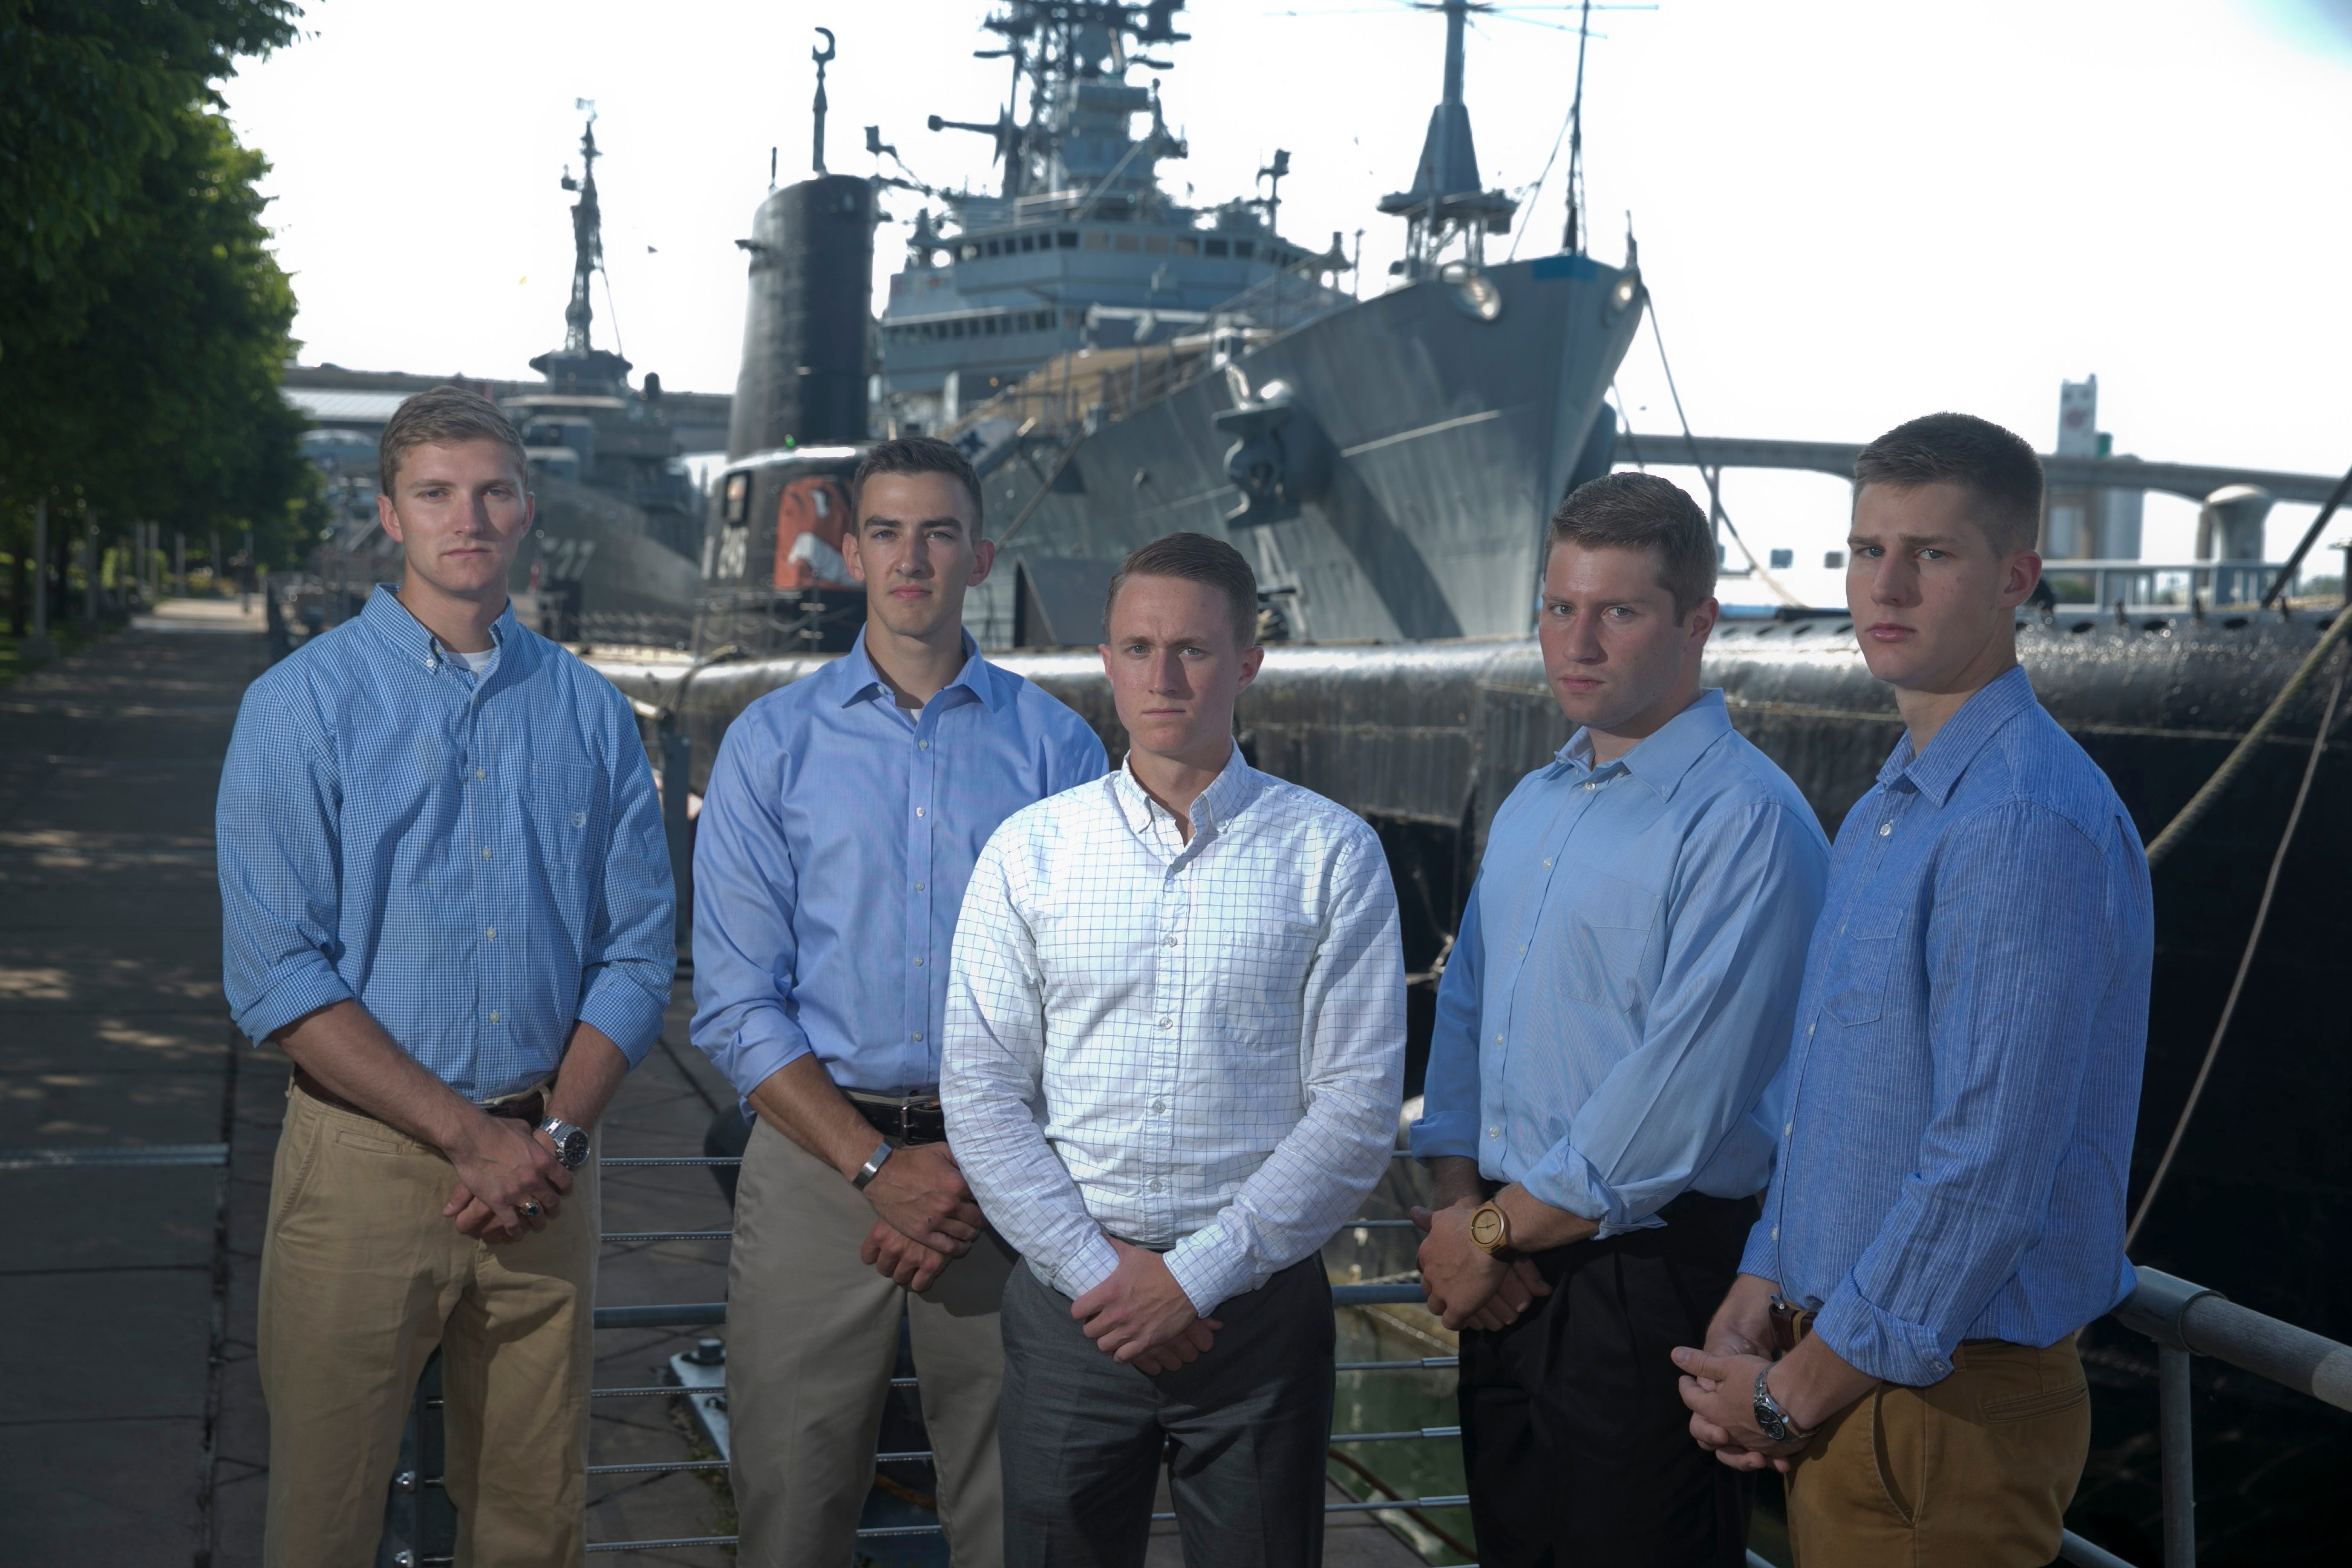 Left to right, Kirk Kostrzewski, Dan Ecker, Gabe Knoll, Michael Hamp and Andrew Karas visit the Buffalo and Erie County Naval & Military Park on Thursday. All five graduated from the U.S. Naval Academy in Annapolis, Md., last month.